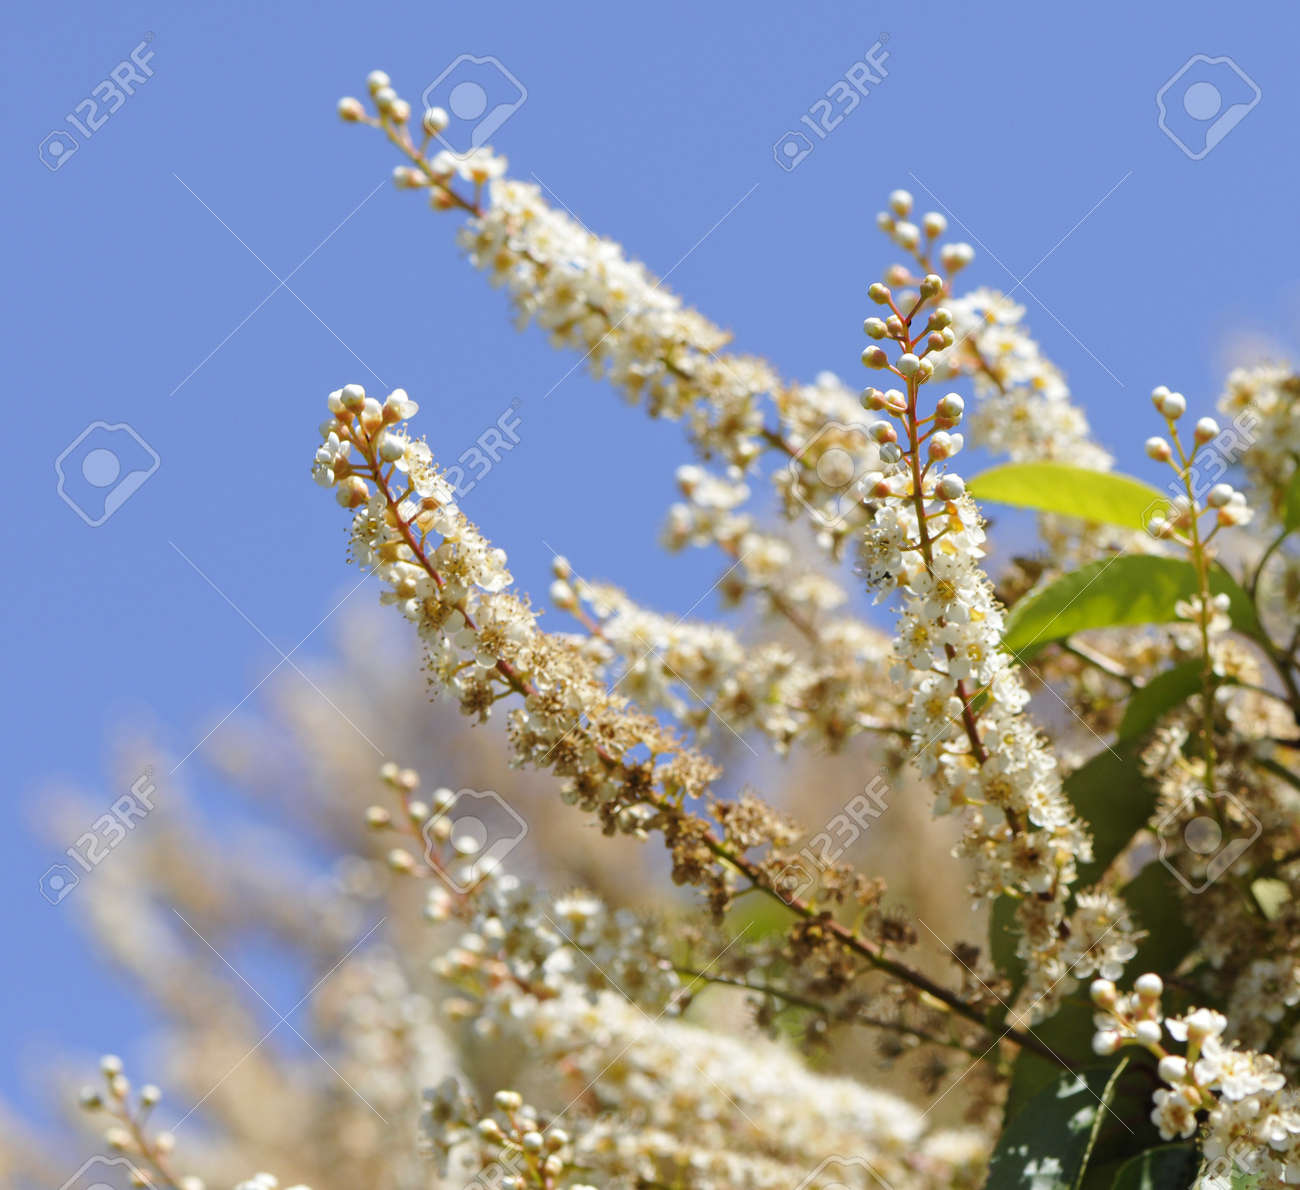 Many Little White Flowers And Buds In A Big Bush With A Blue Stock